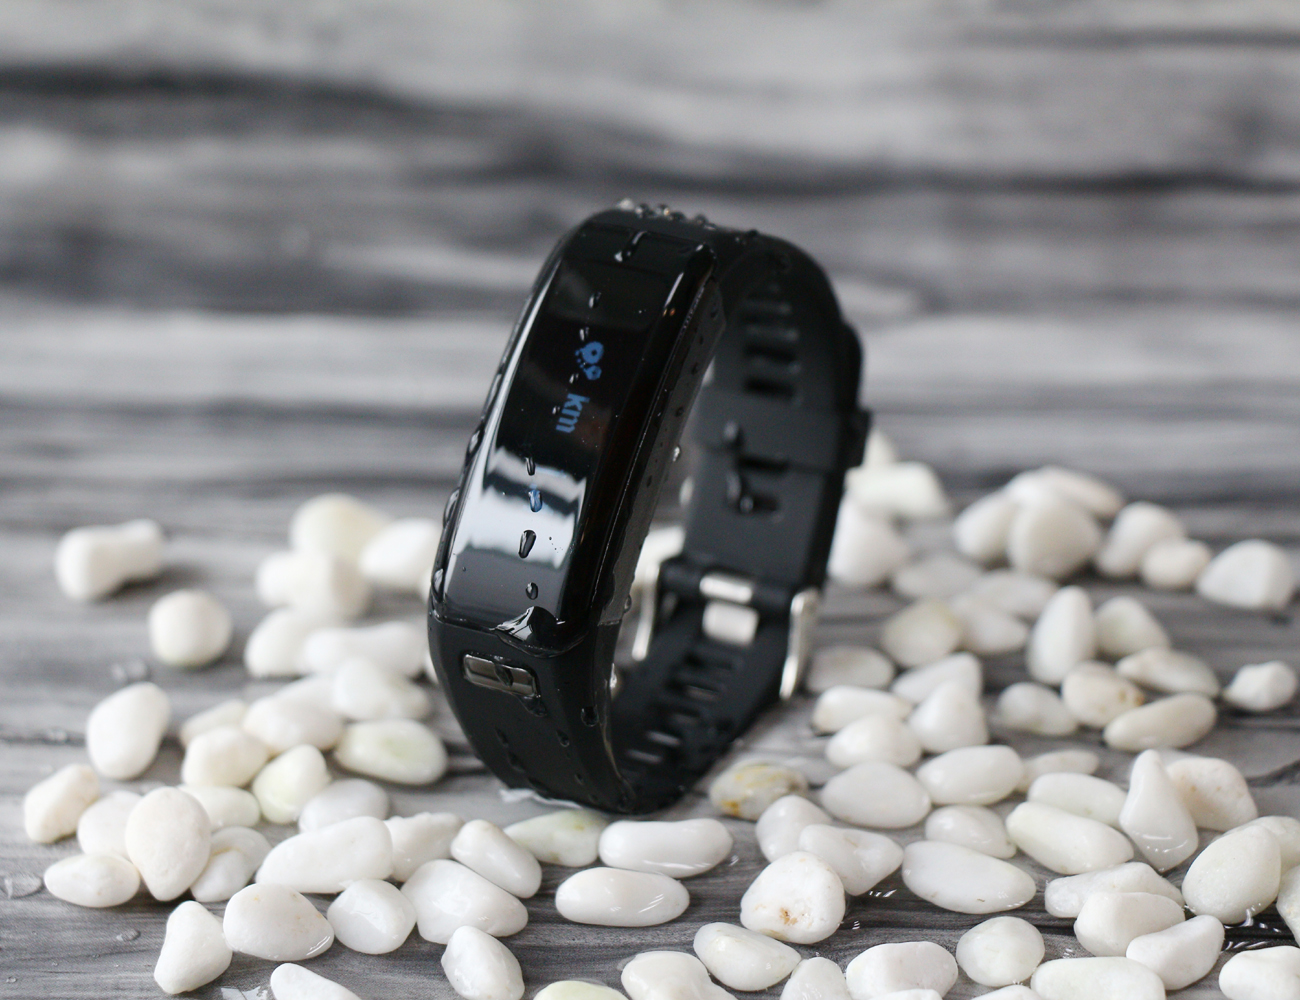 How to Update the Firmware of NO 1 F1 SmartBand? – NO 1 Smartwatch